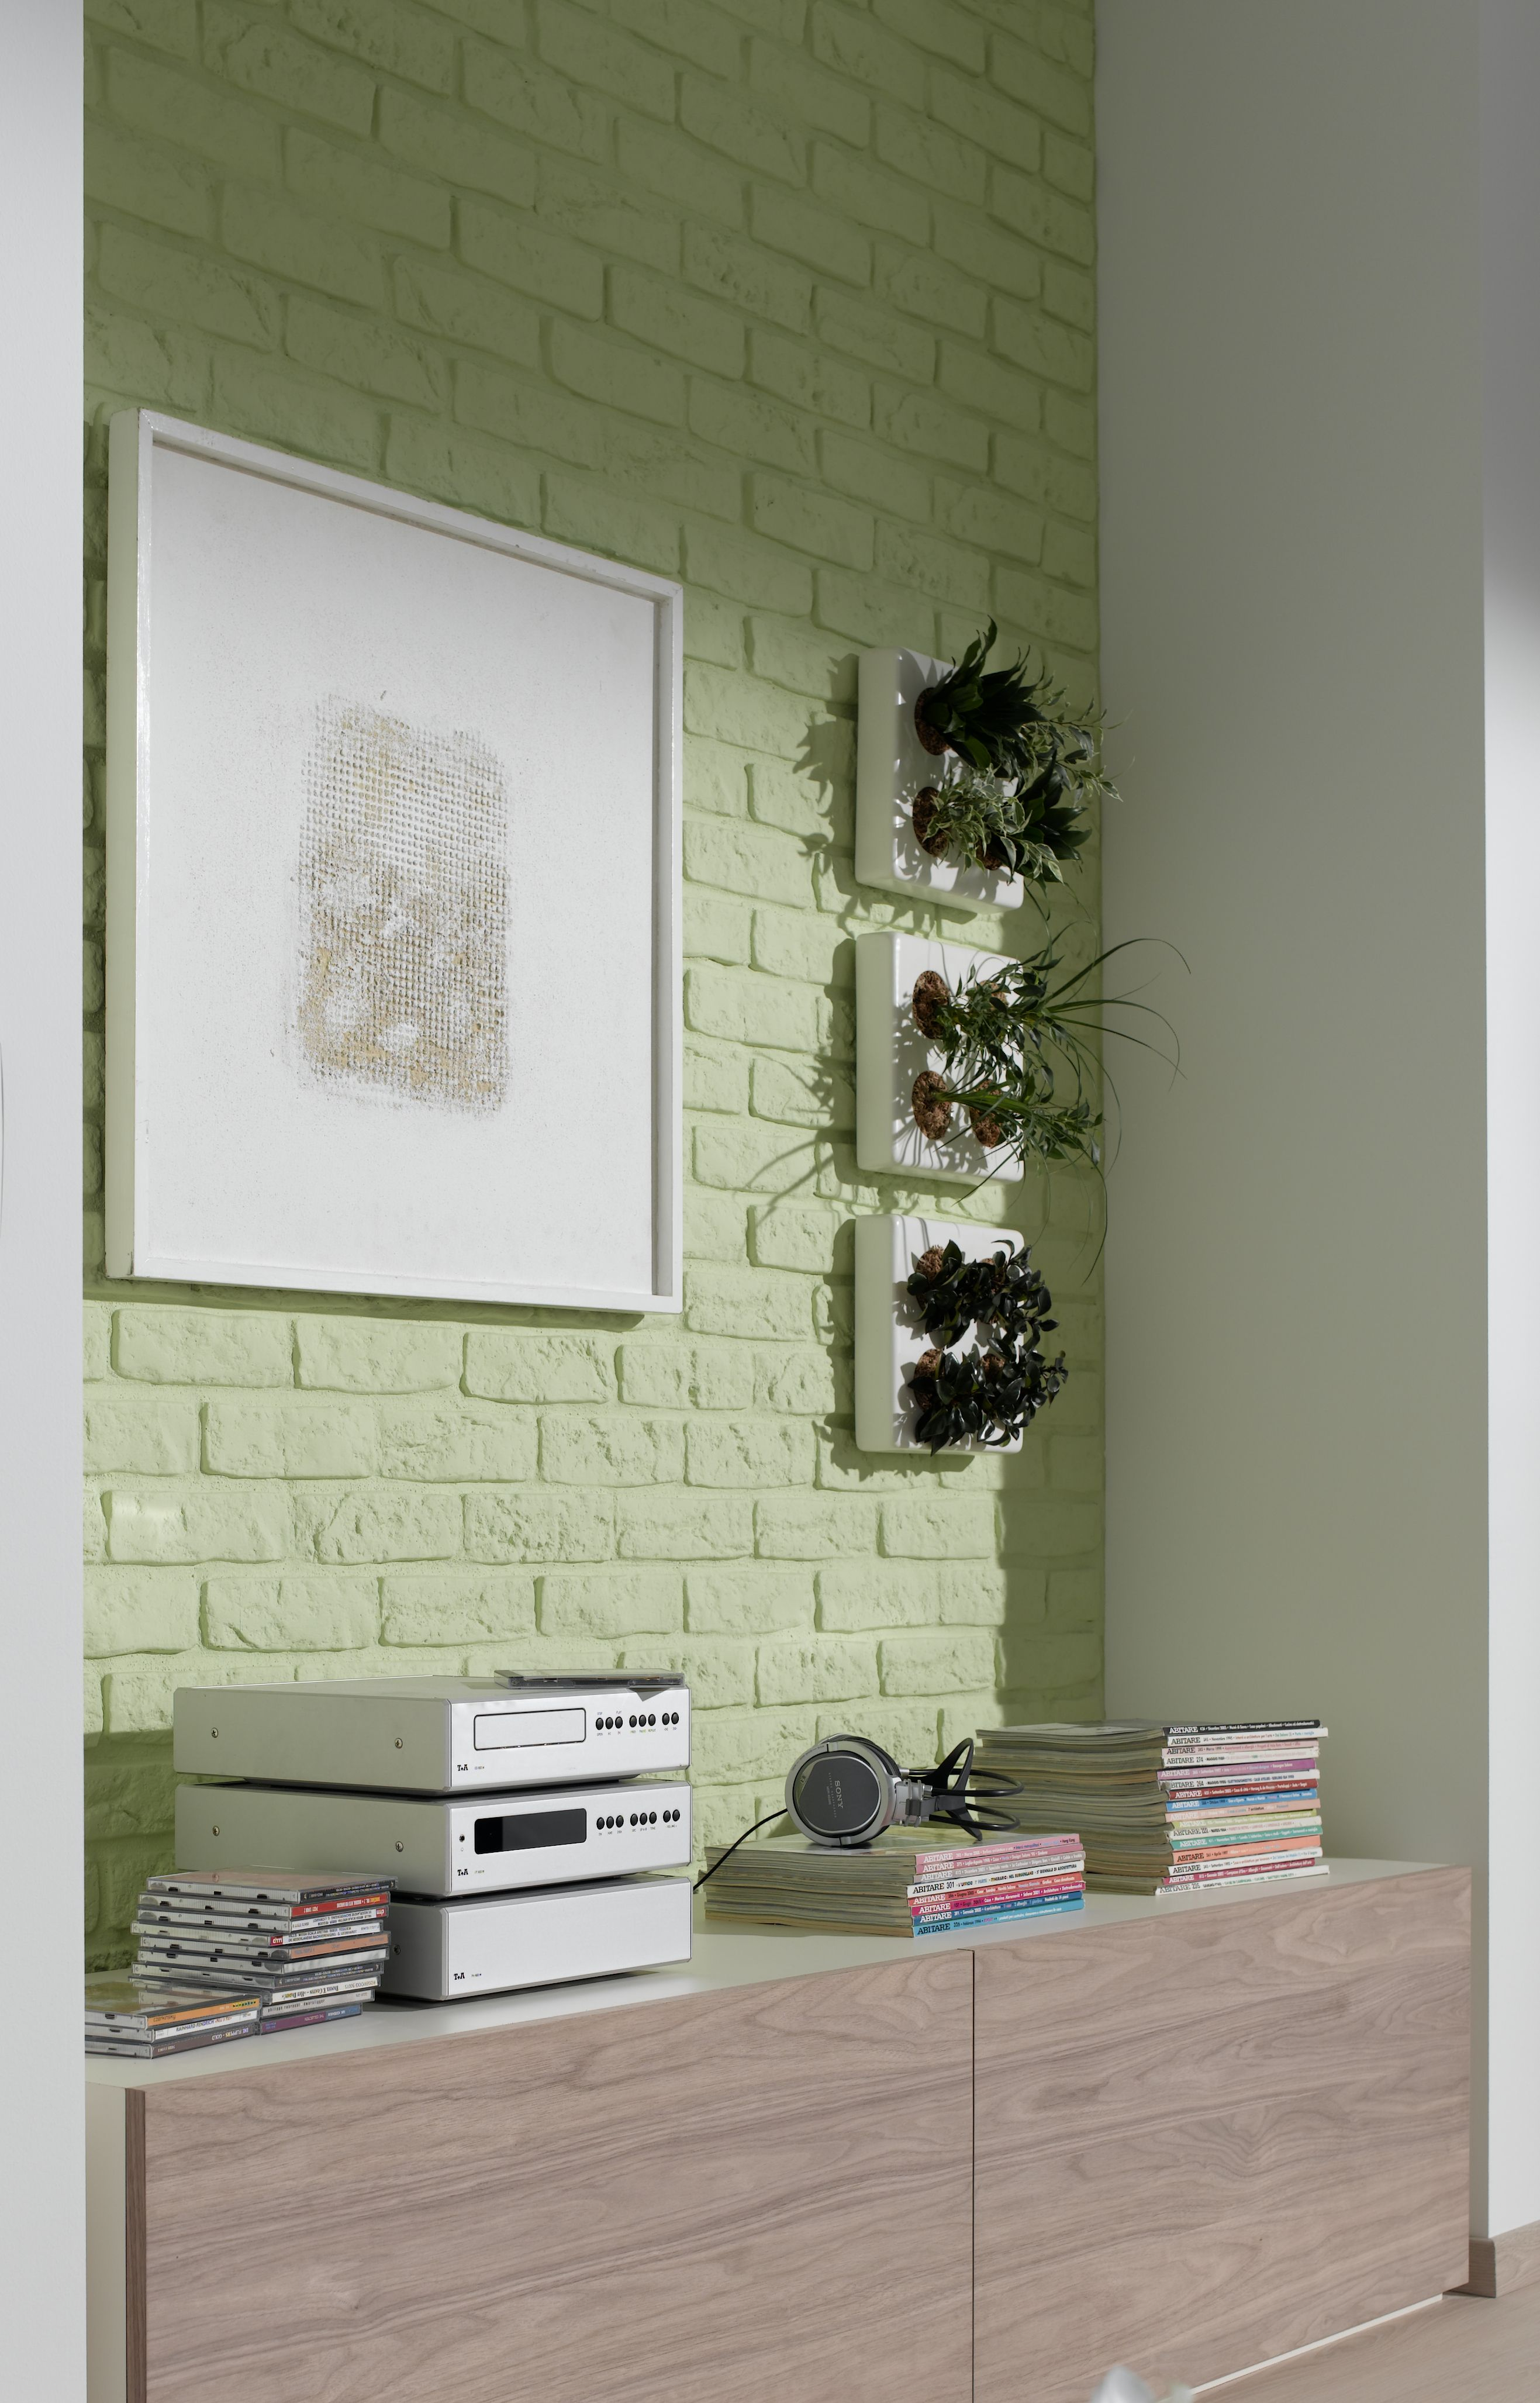 Creative customers color your world with easy usage diy